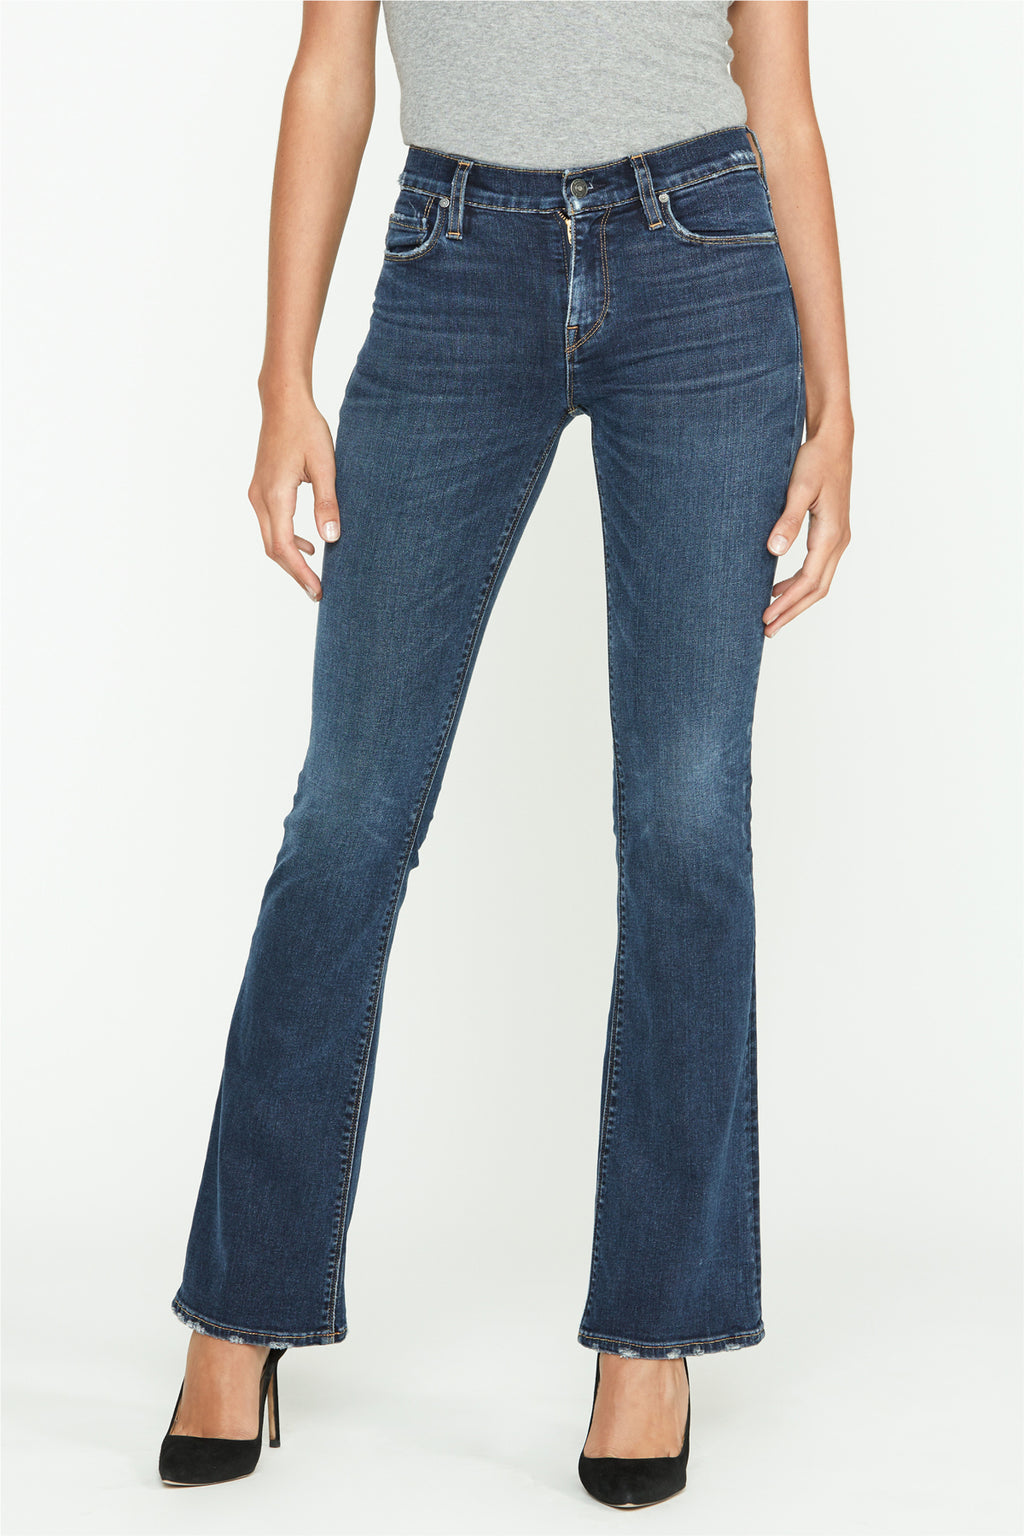 Nico Mid-Rise Bootcut Jean - hudsonjeans